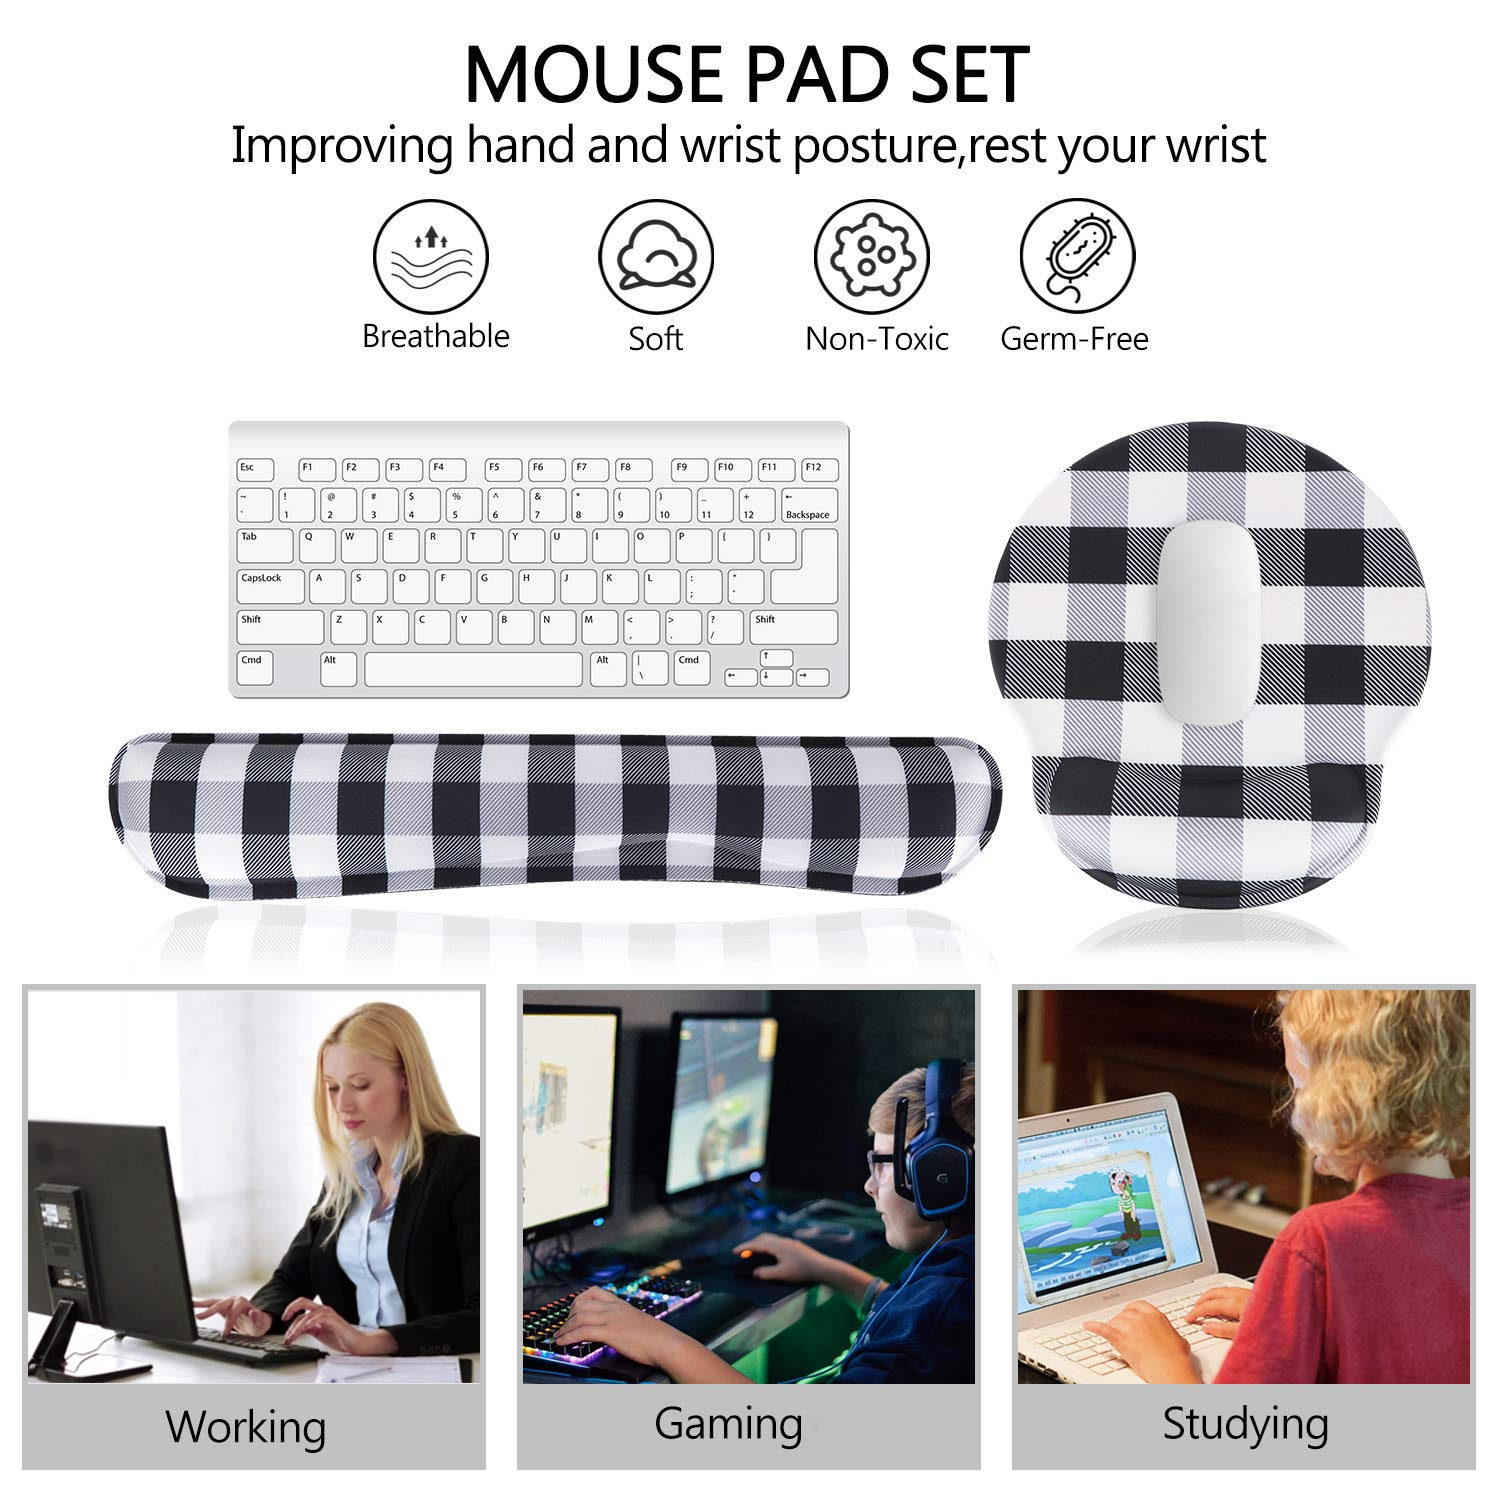 Wildflowers HAOCOO Ergonomic Keyboard Wrist Rest Pad and Mouse Pad Wrist Support Set with Non-Slip Backing Memory Form-Filled Easy-Typing and Pain Relief for Gaming Office Computer Laptop